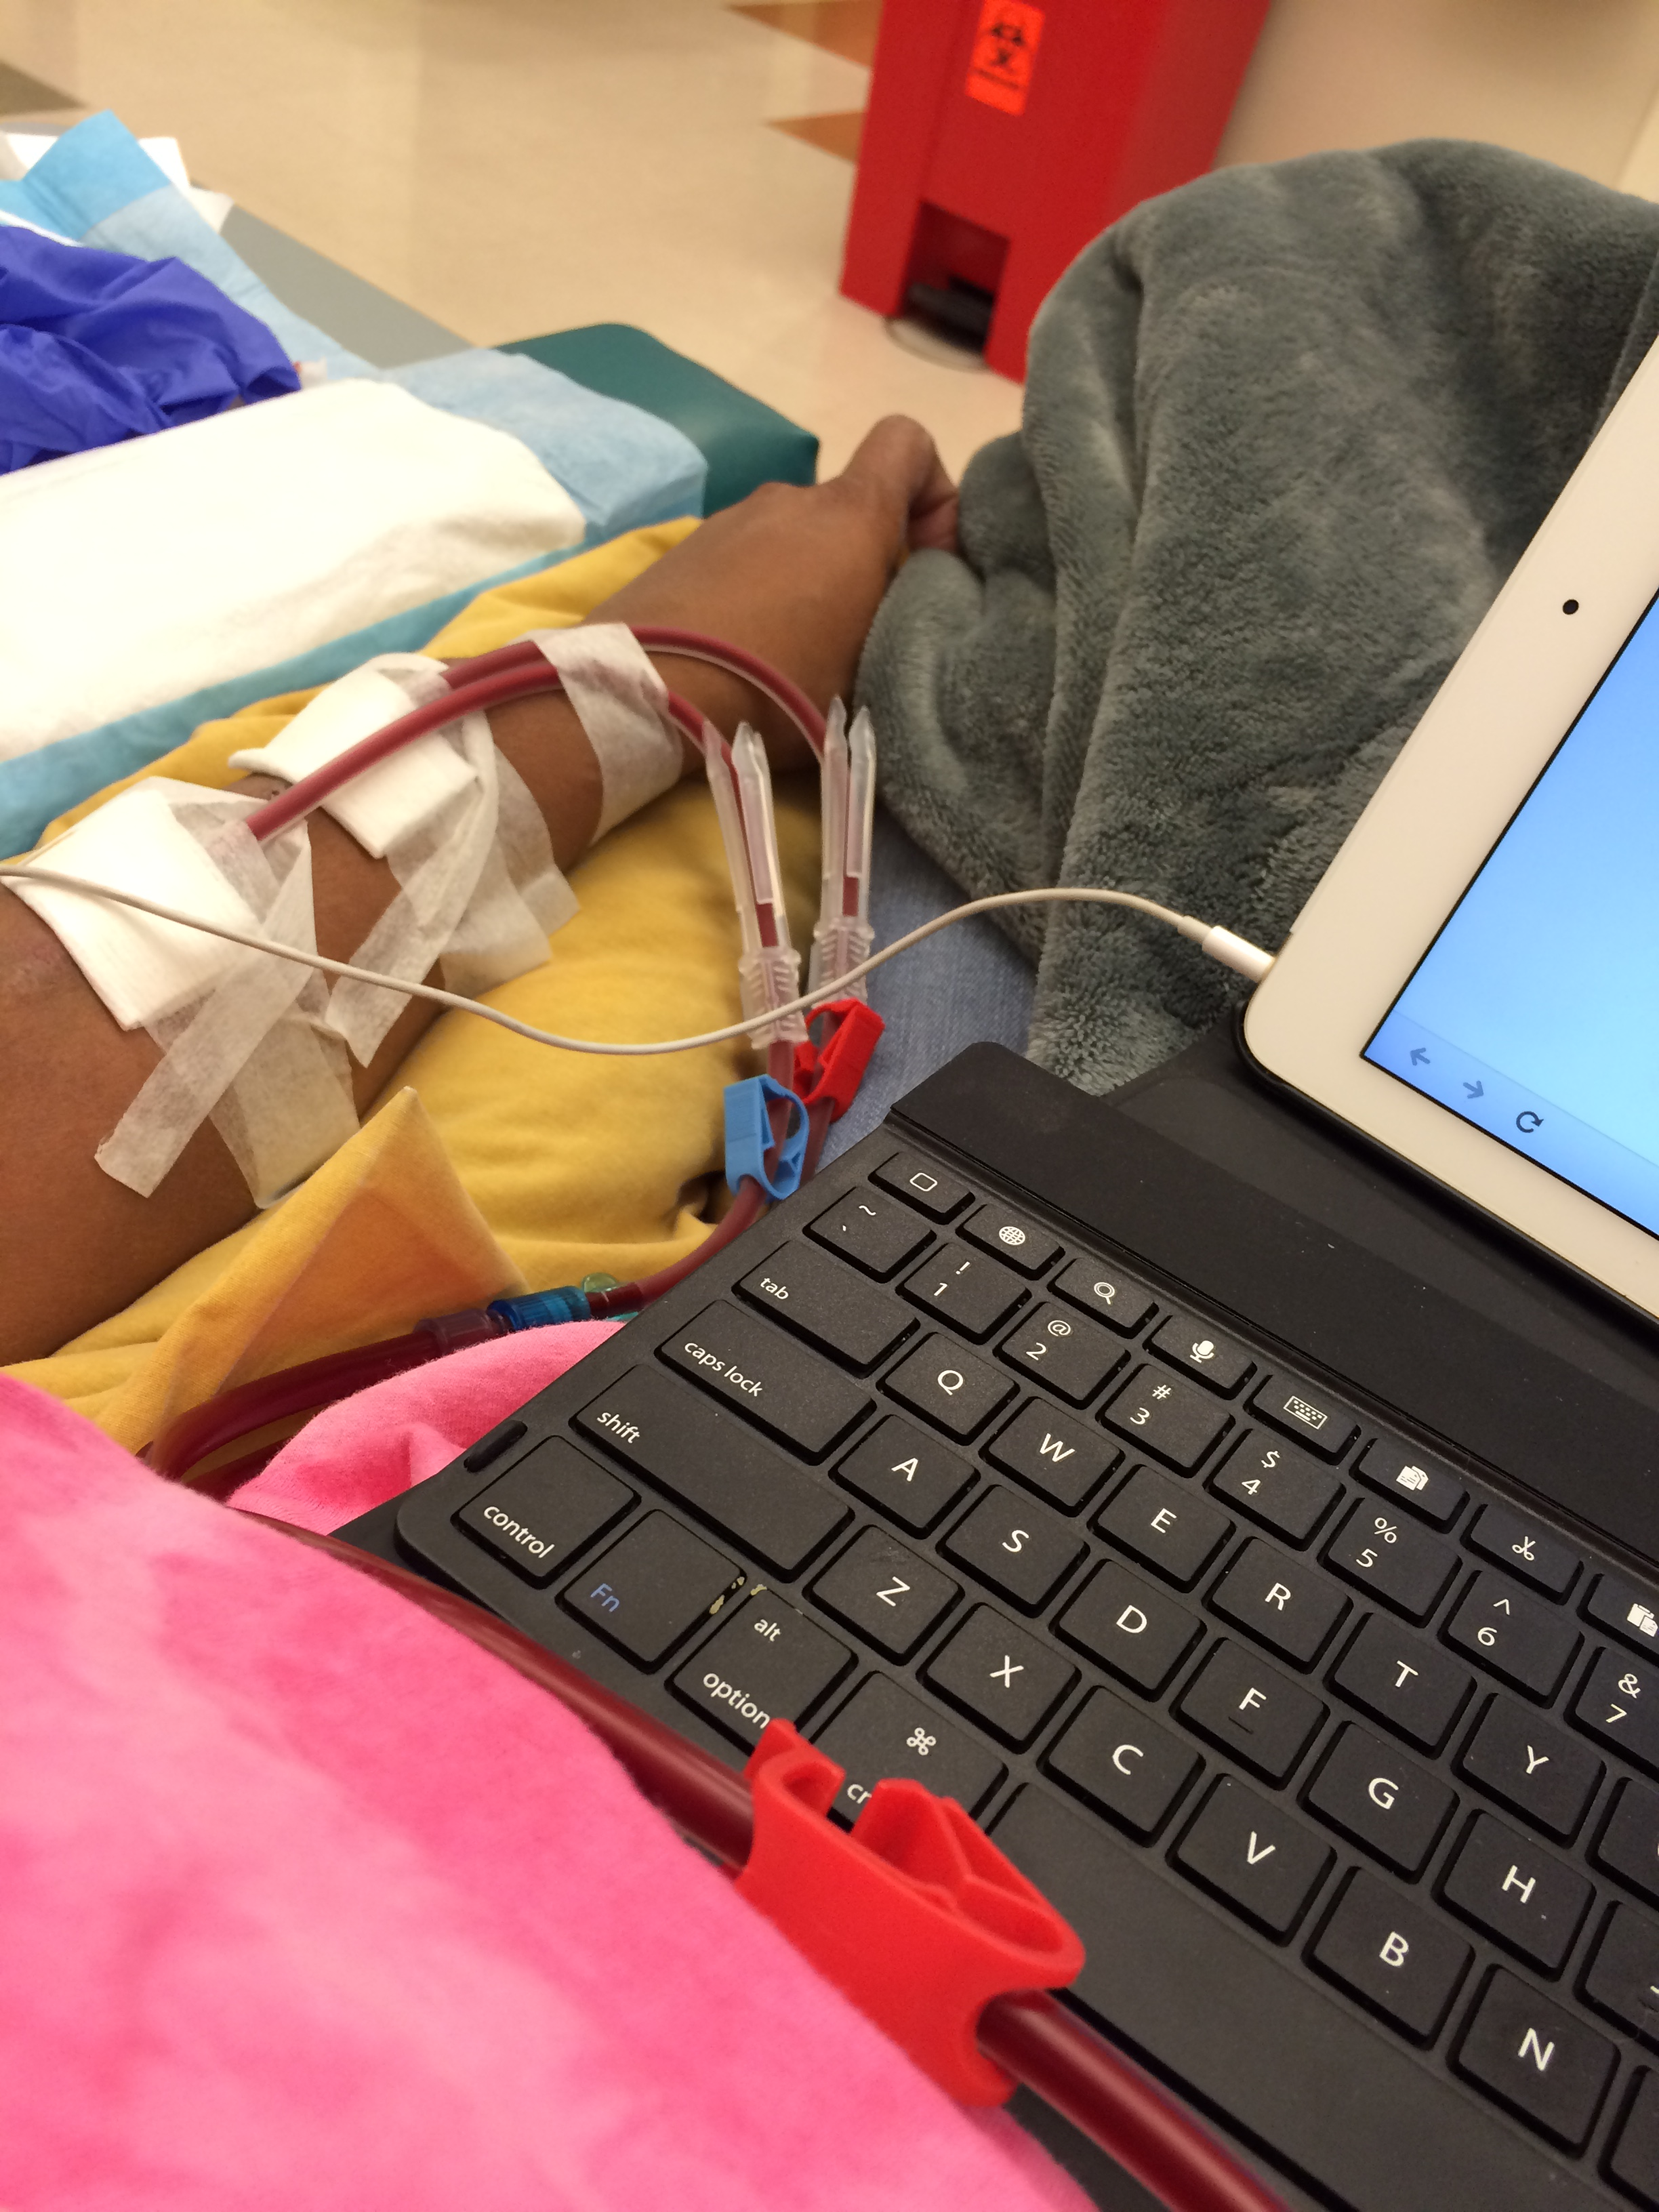 Dialysis gives life